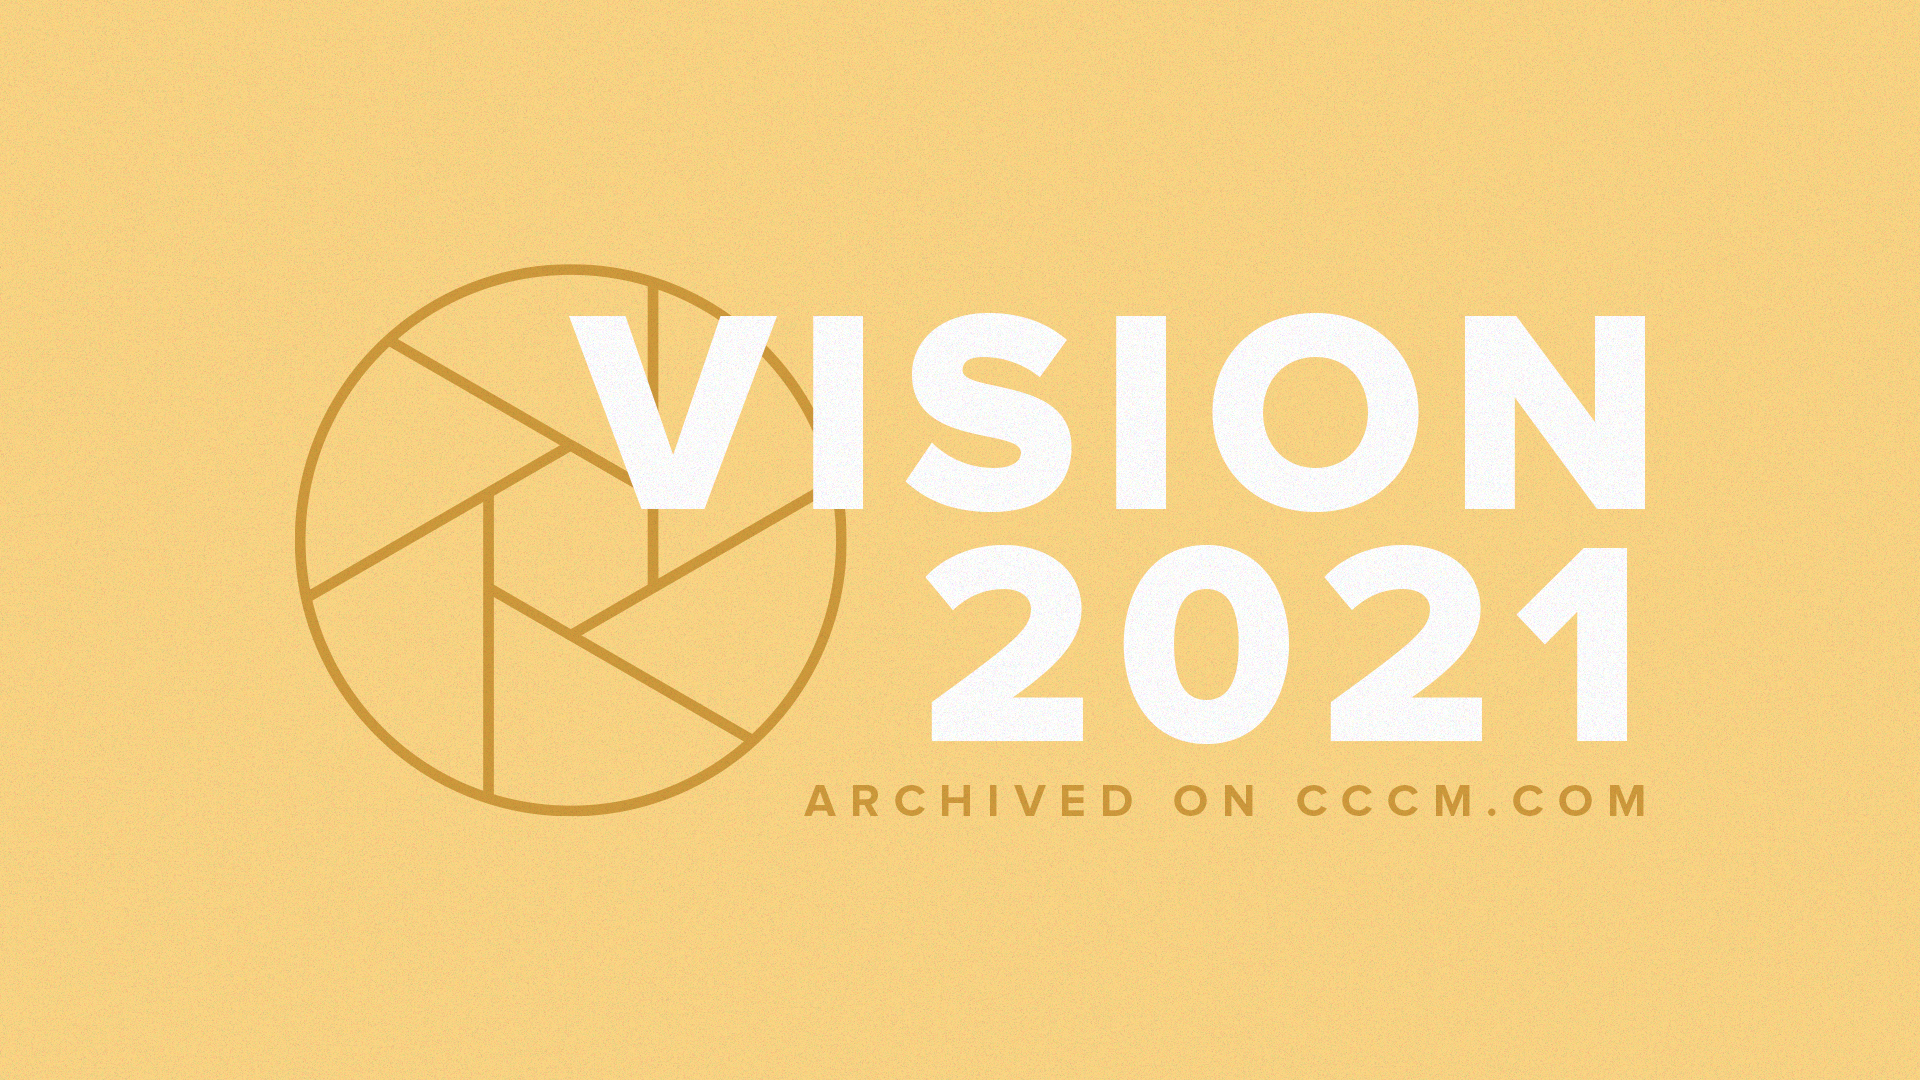 VisionSunday 1920x1080 Archive